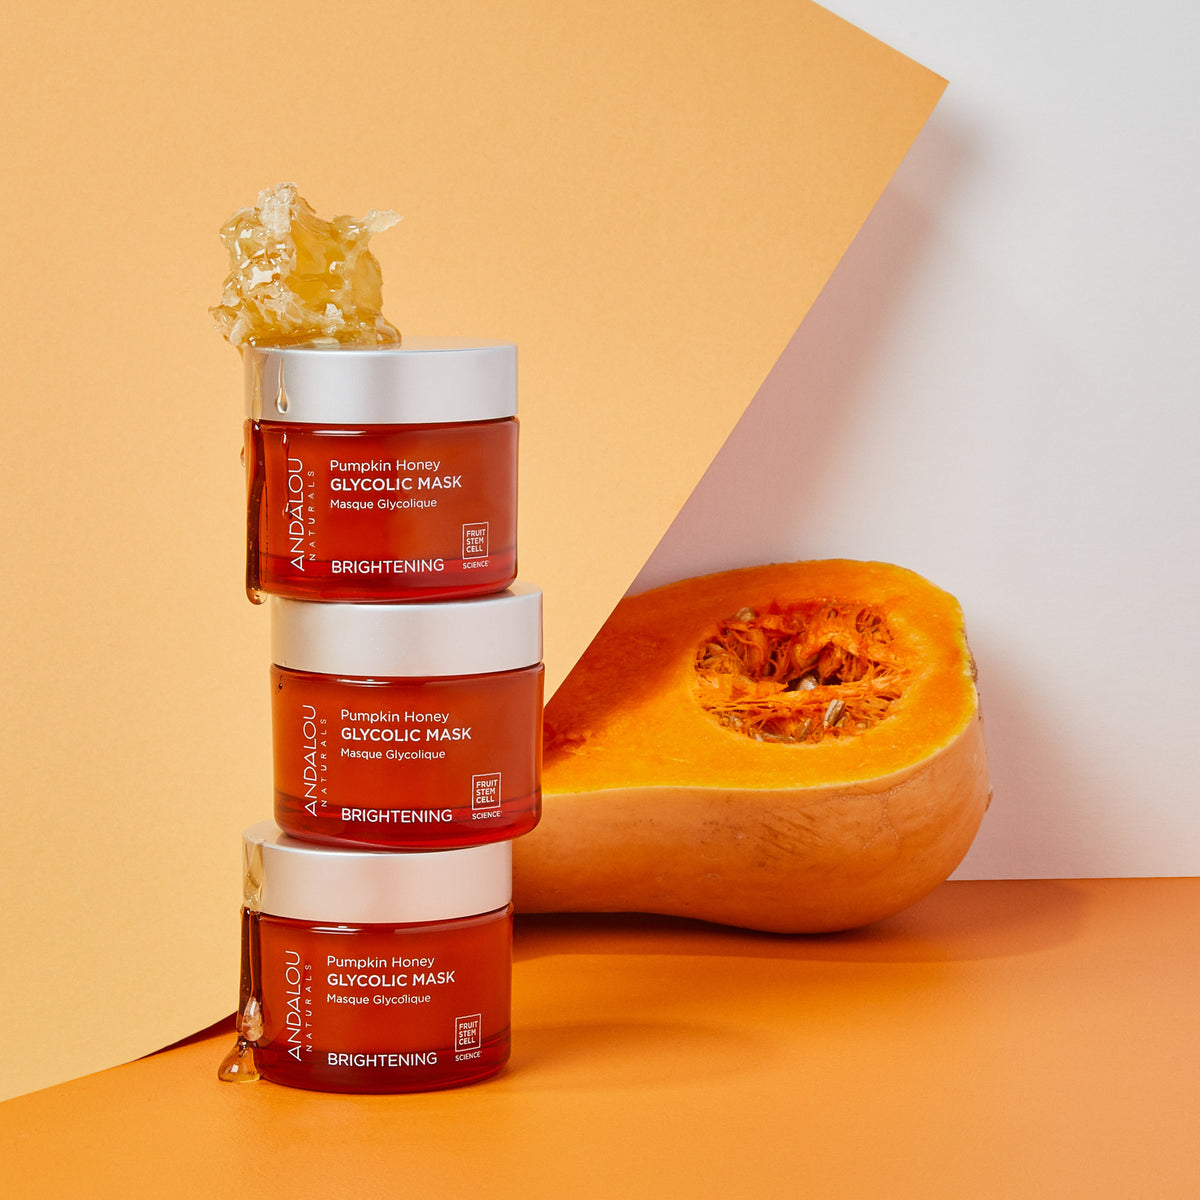 tow of Brightening Pumpkin Honey Glycolic Mask jars with honeycomb and half of a butternut squash